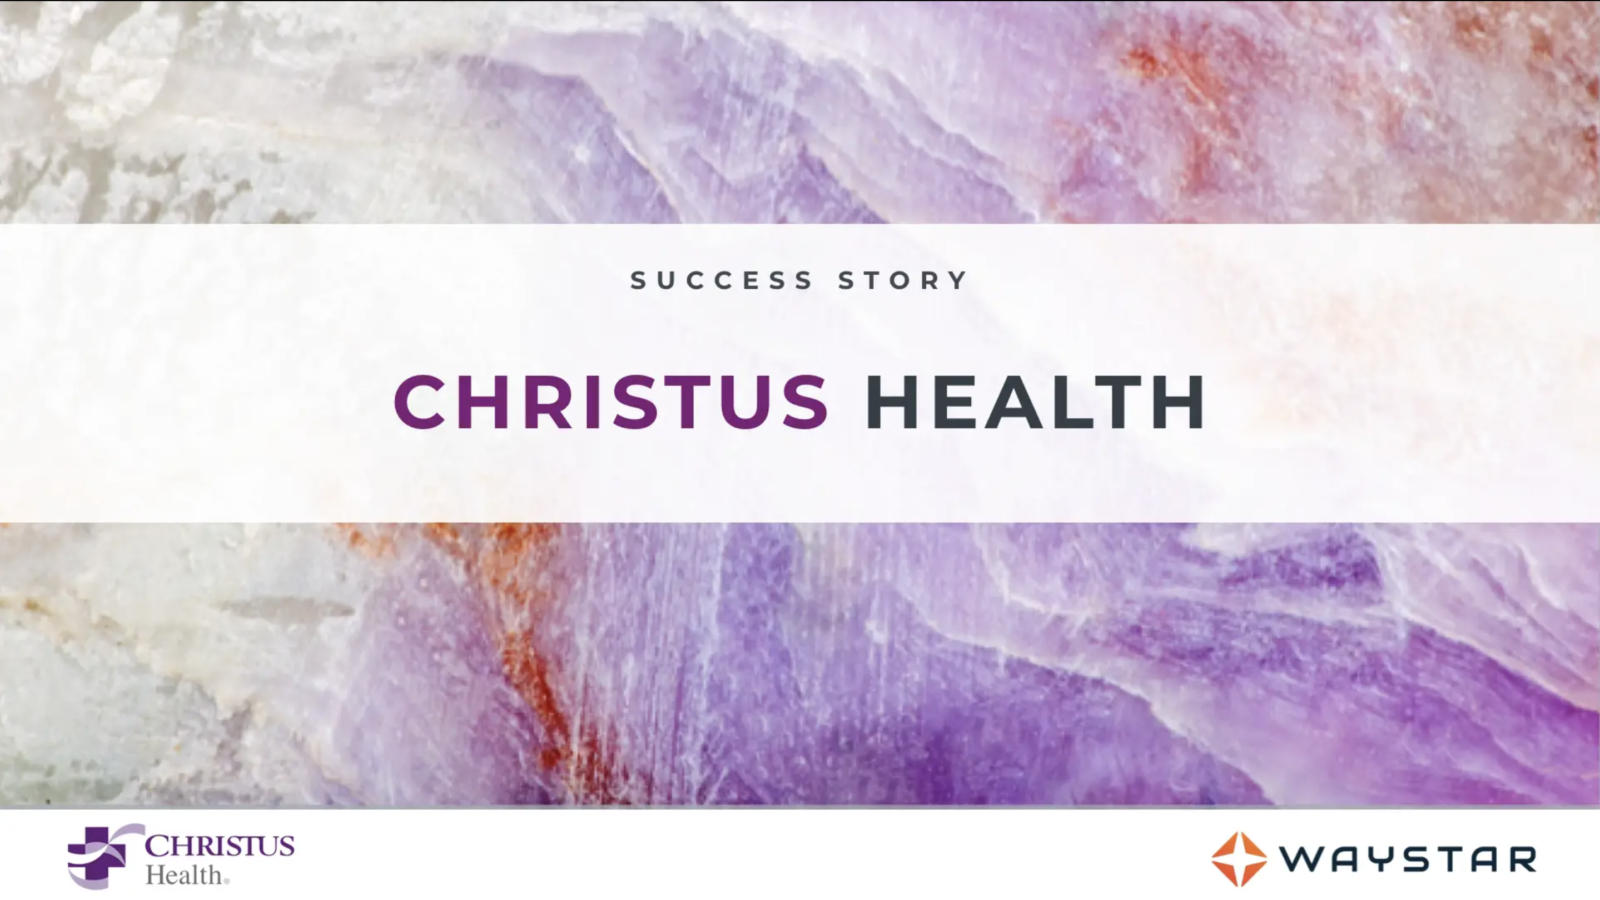 Success story: CHRISTUS Health